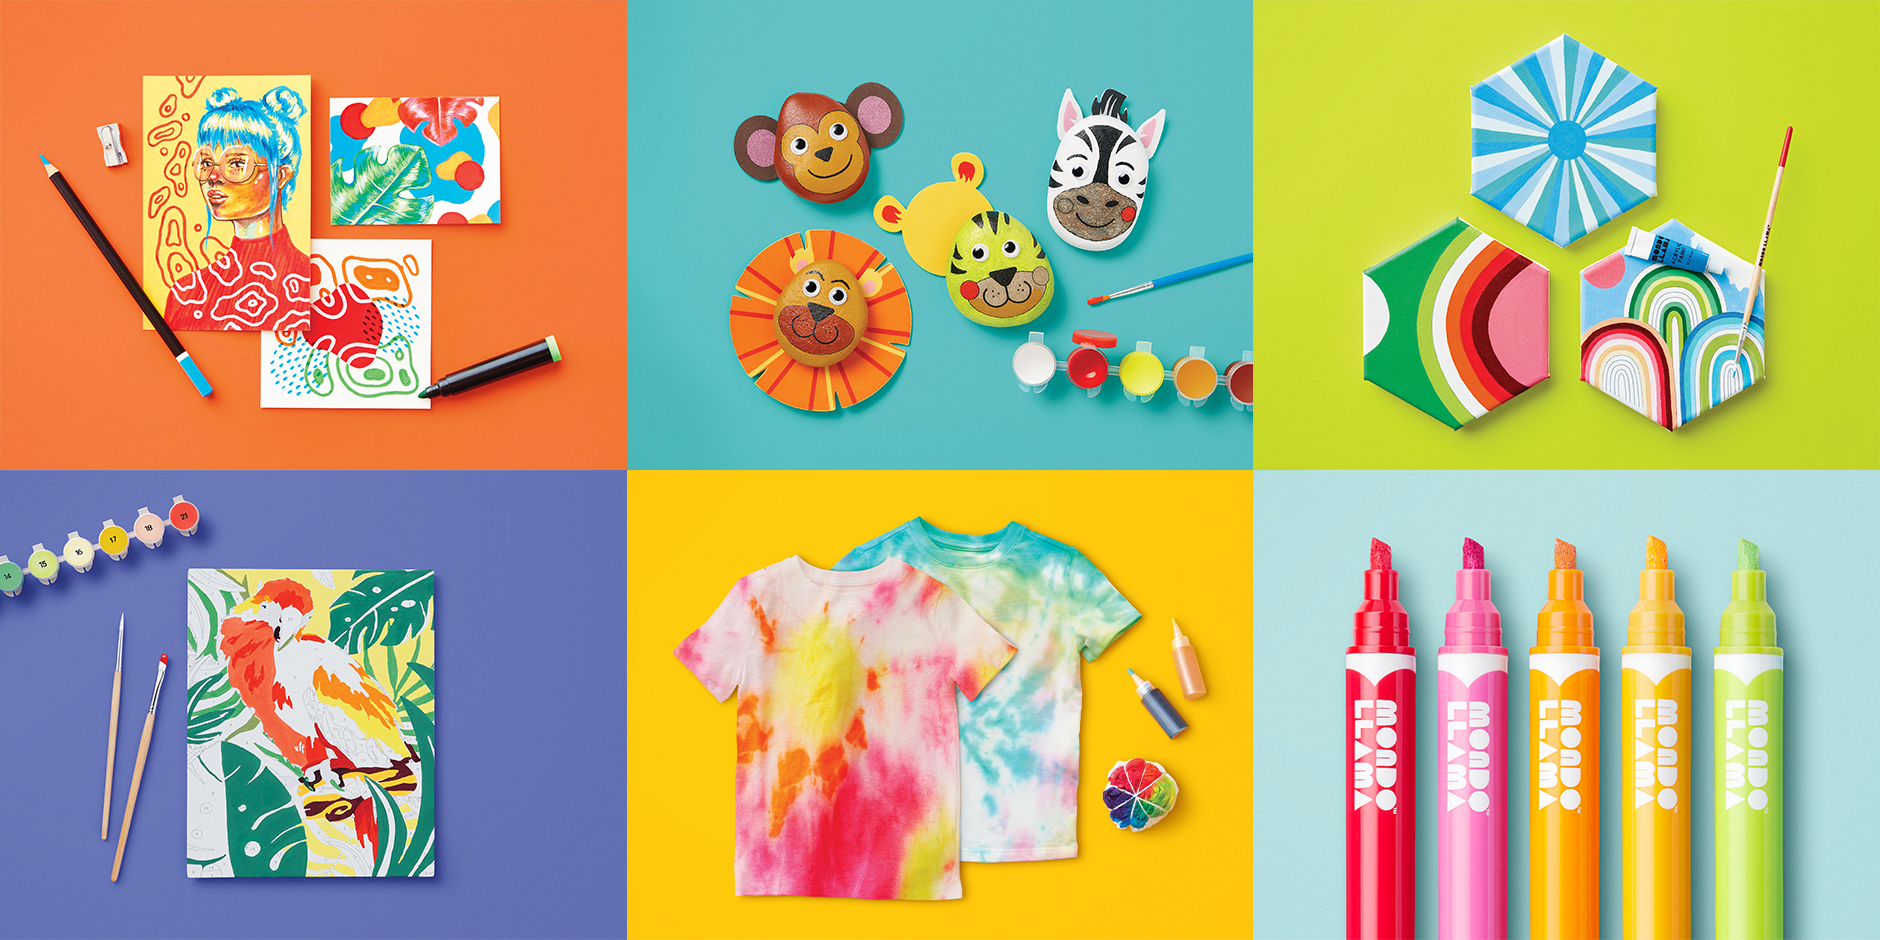 Six multicolored panels showing different crafts guest can make with the products, including wall art, tie-dye shirts, paper animal heads and more.